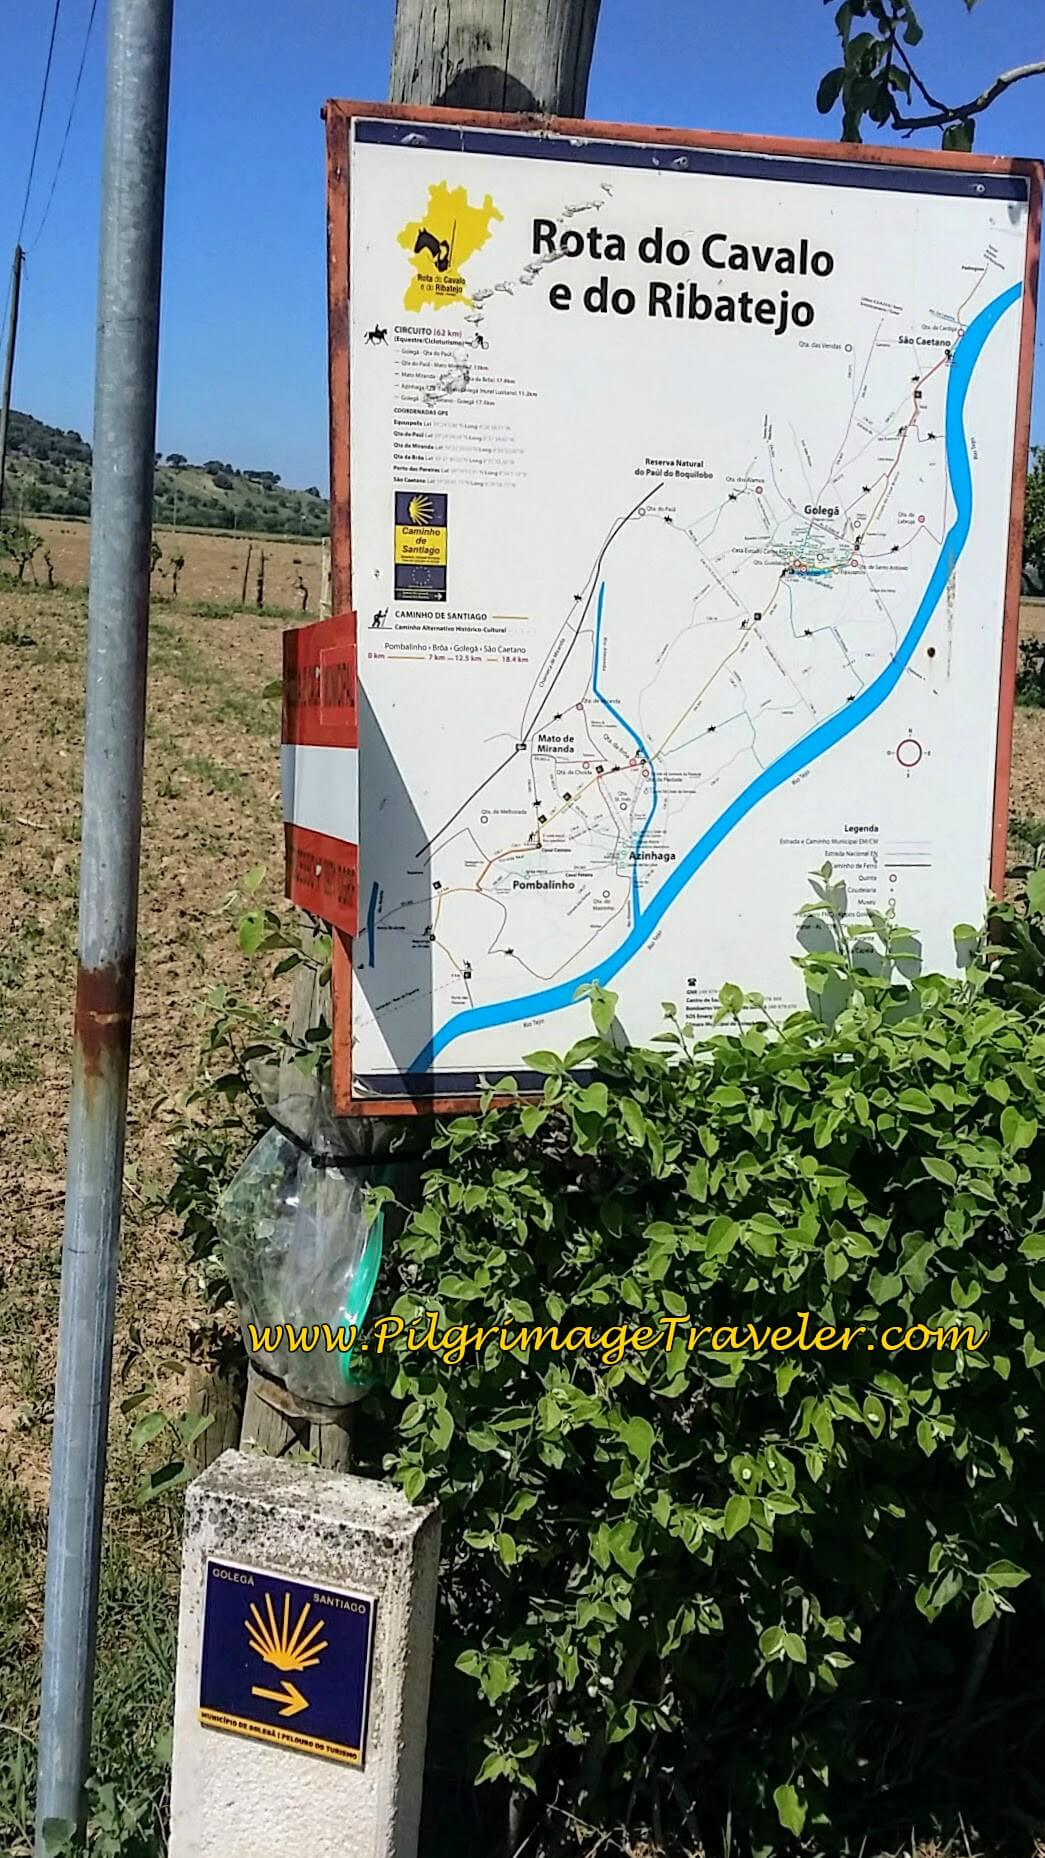 First Posted Camino Route Map near Pombalinho, Portugal